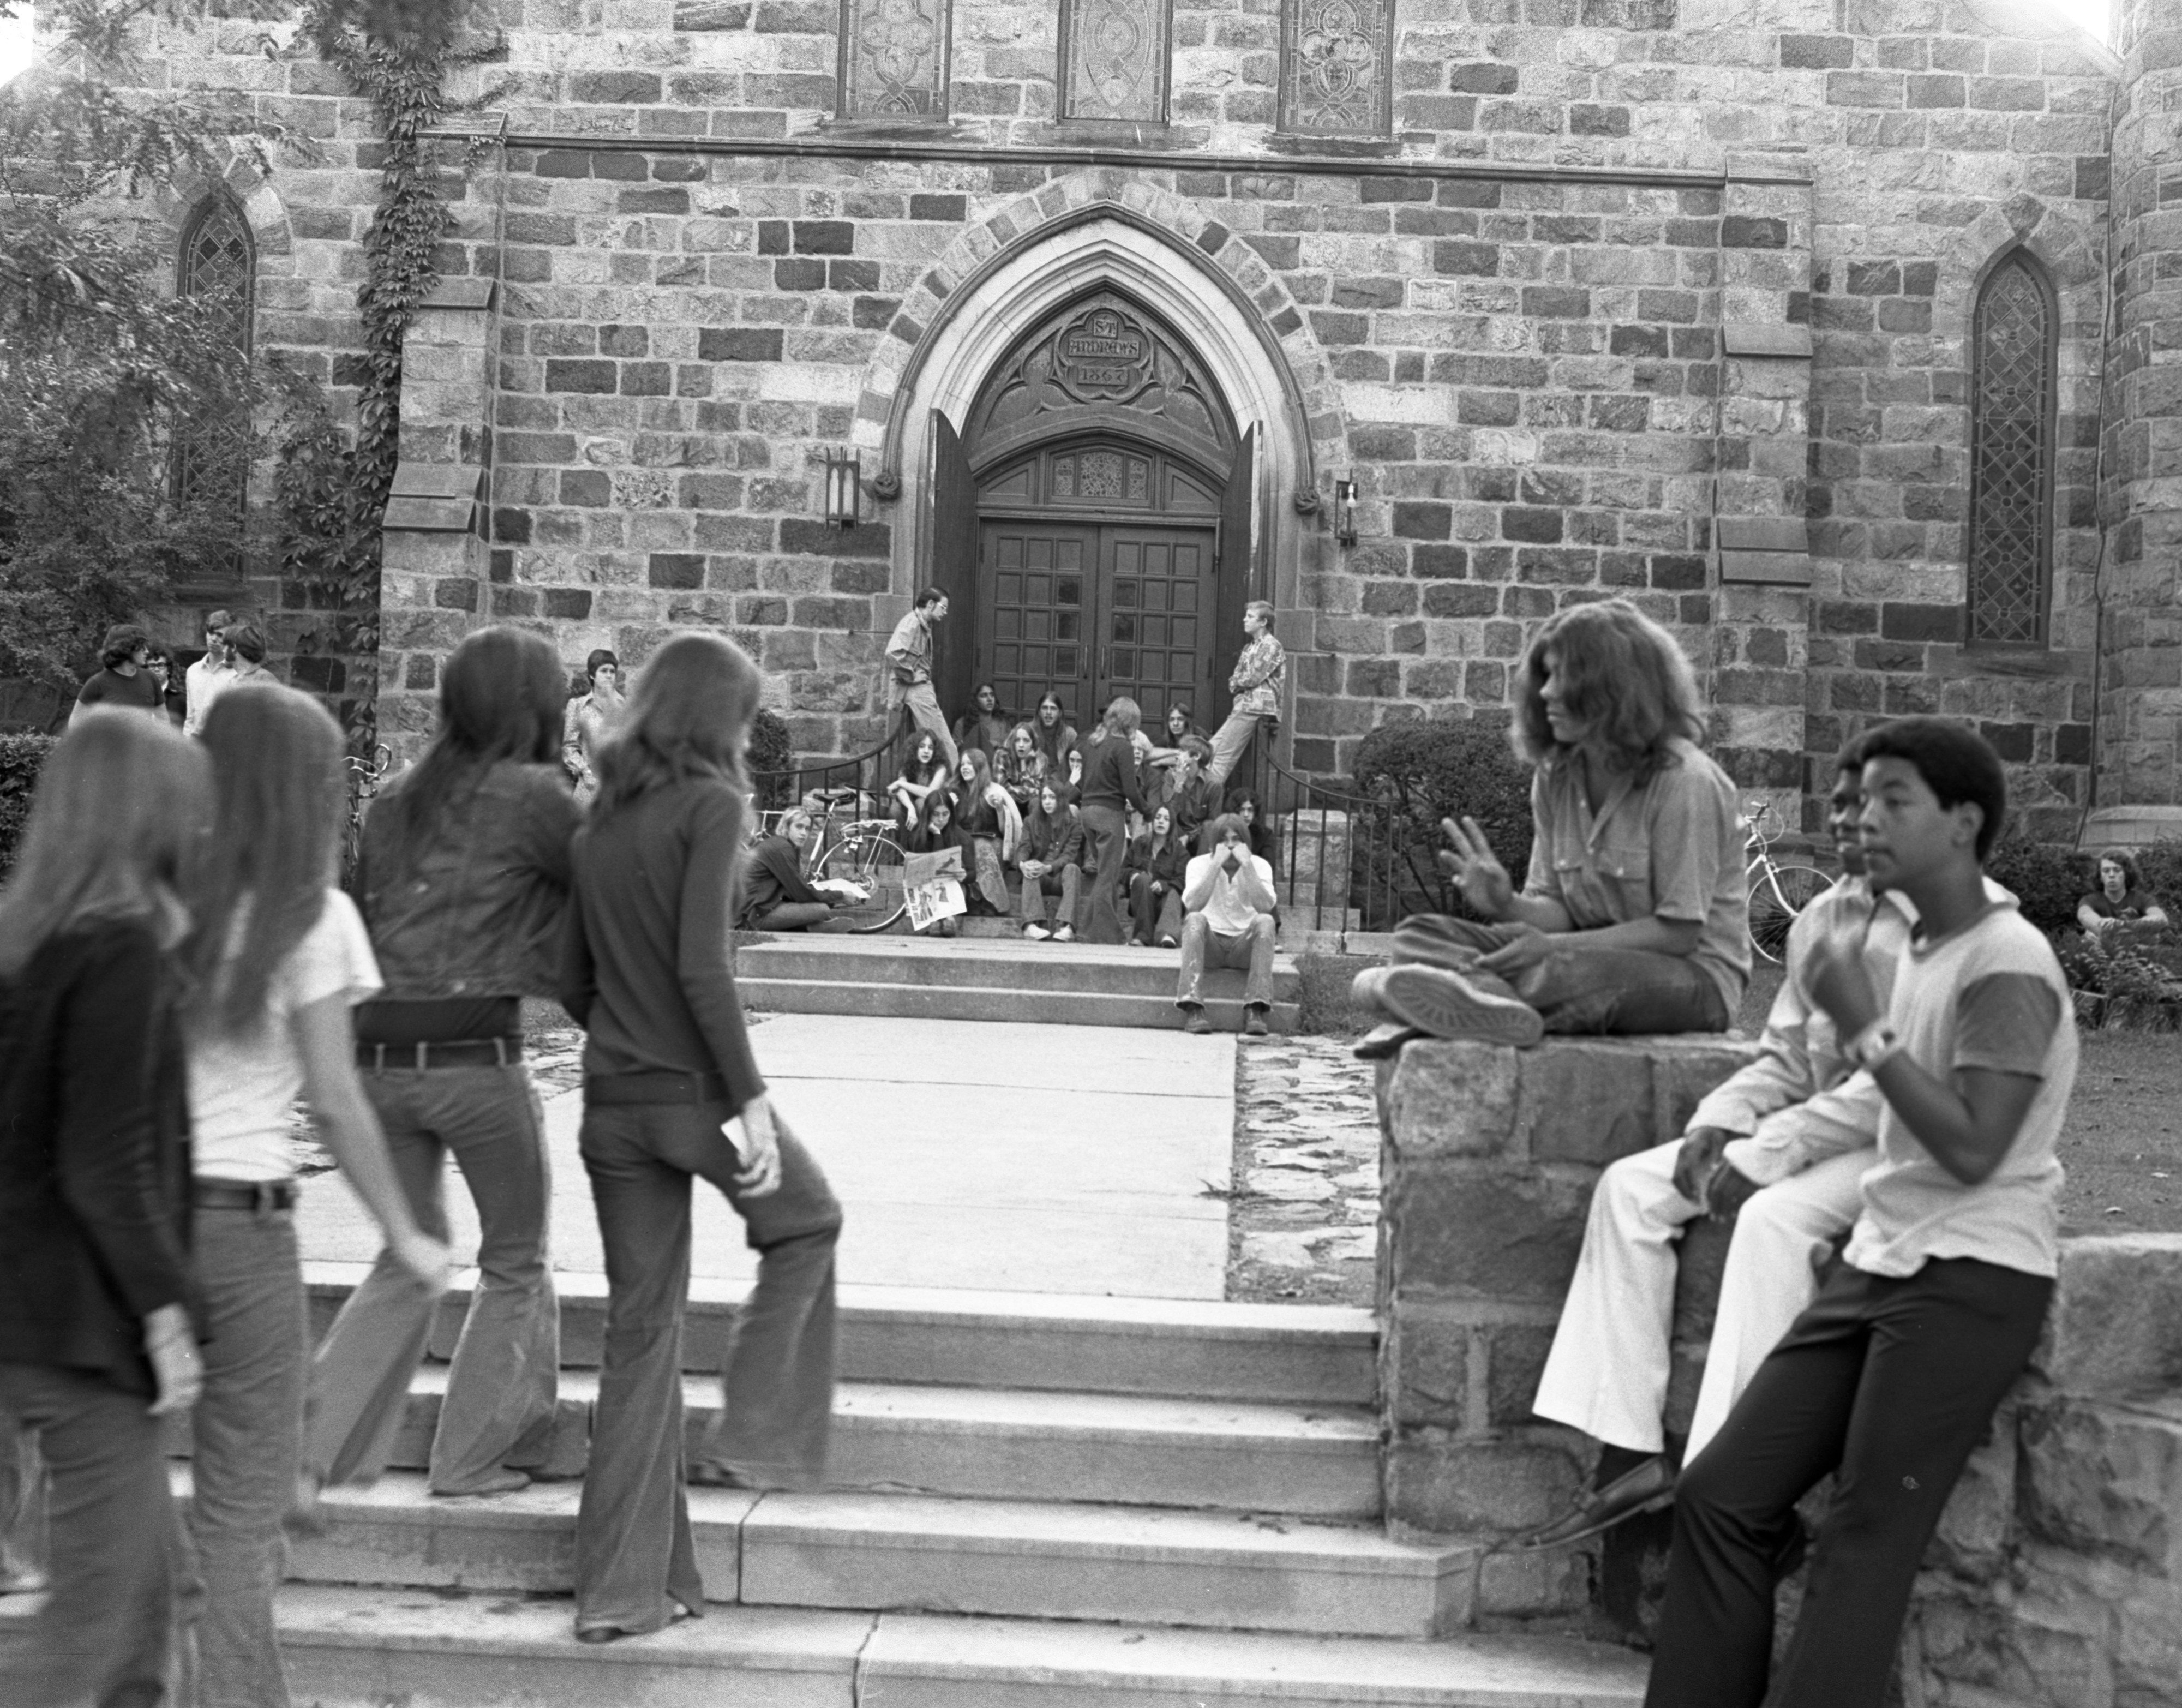 Community High School Officially Opens With Orientation at St. Andrew's Episcopal Church, September 1972 image